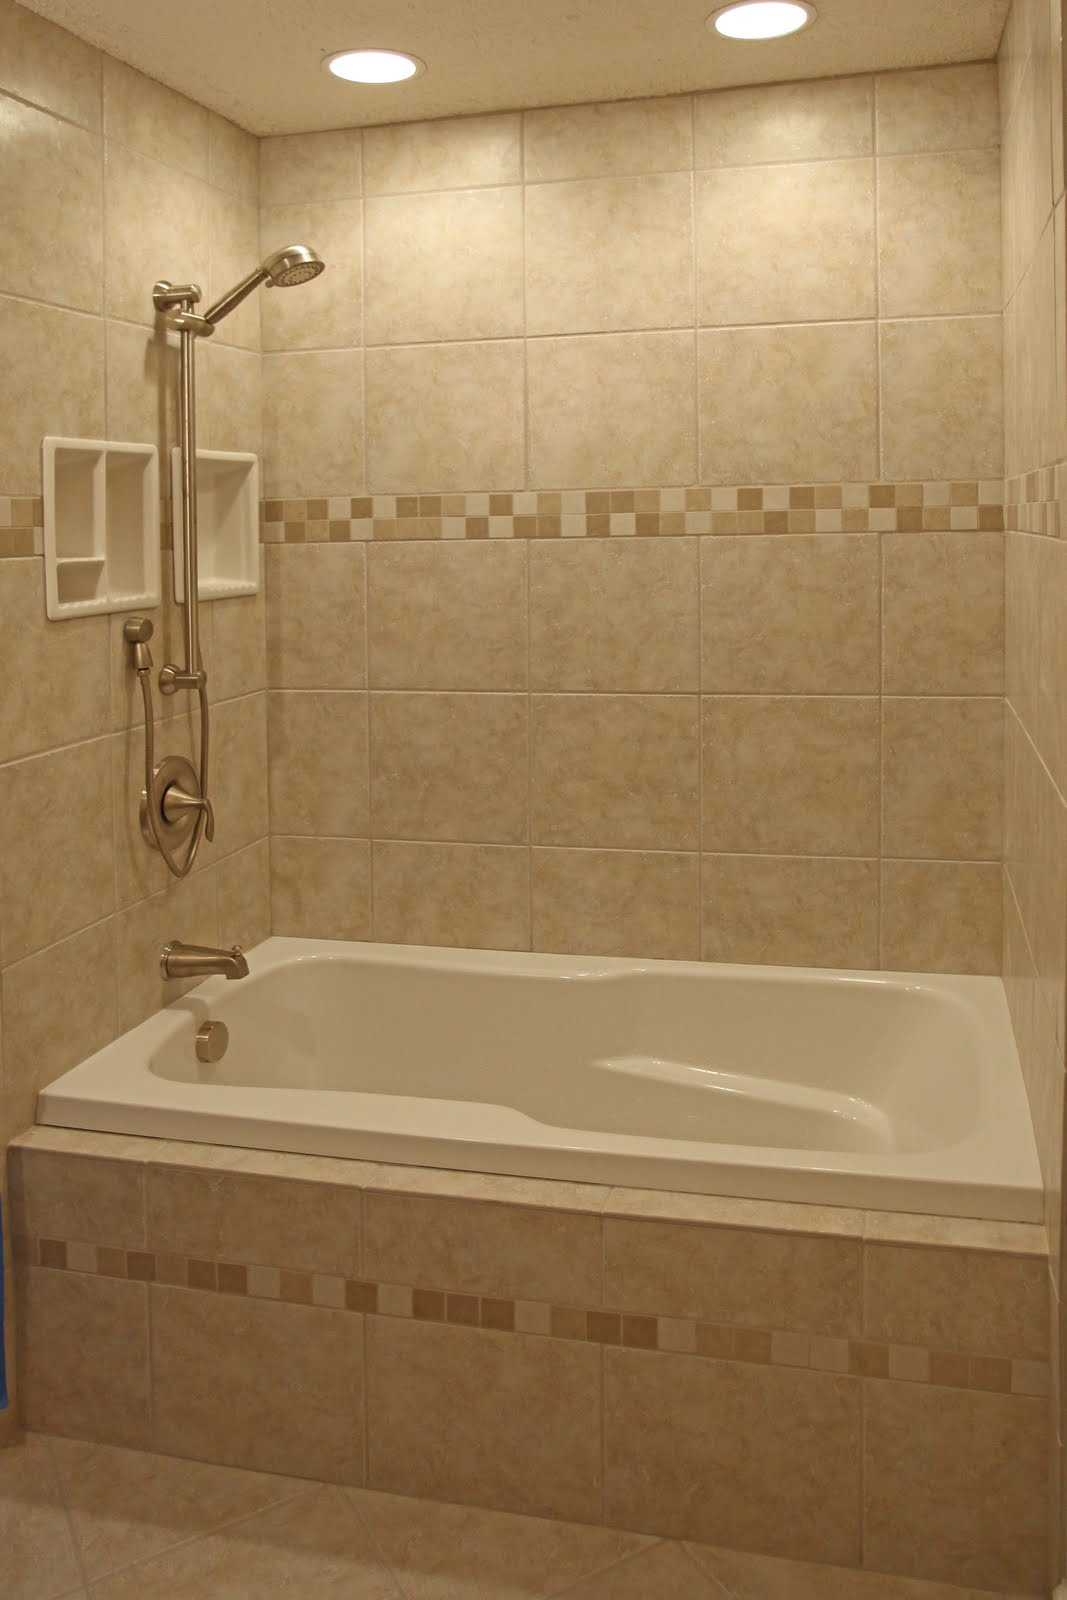 Bathroom Bathtub Remodel Ideas Of Bathroom Remodeling Design Ideas Tile Shower Niches